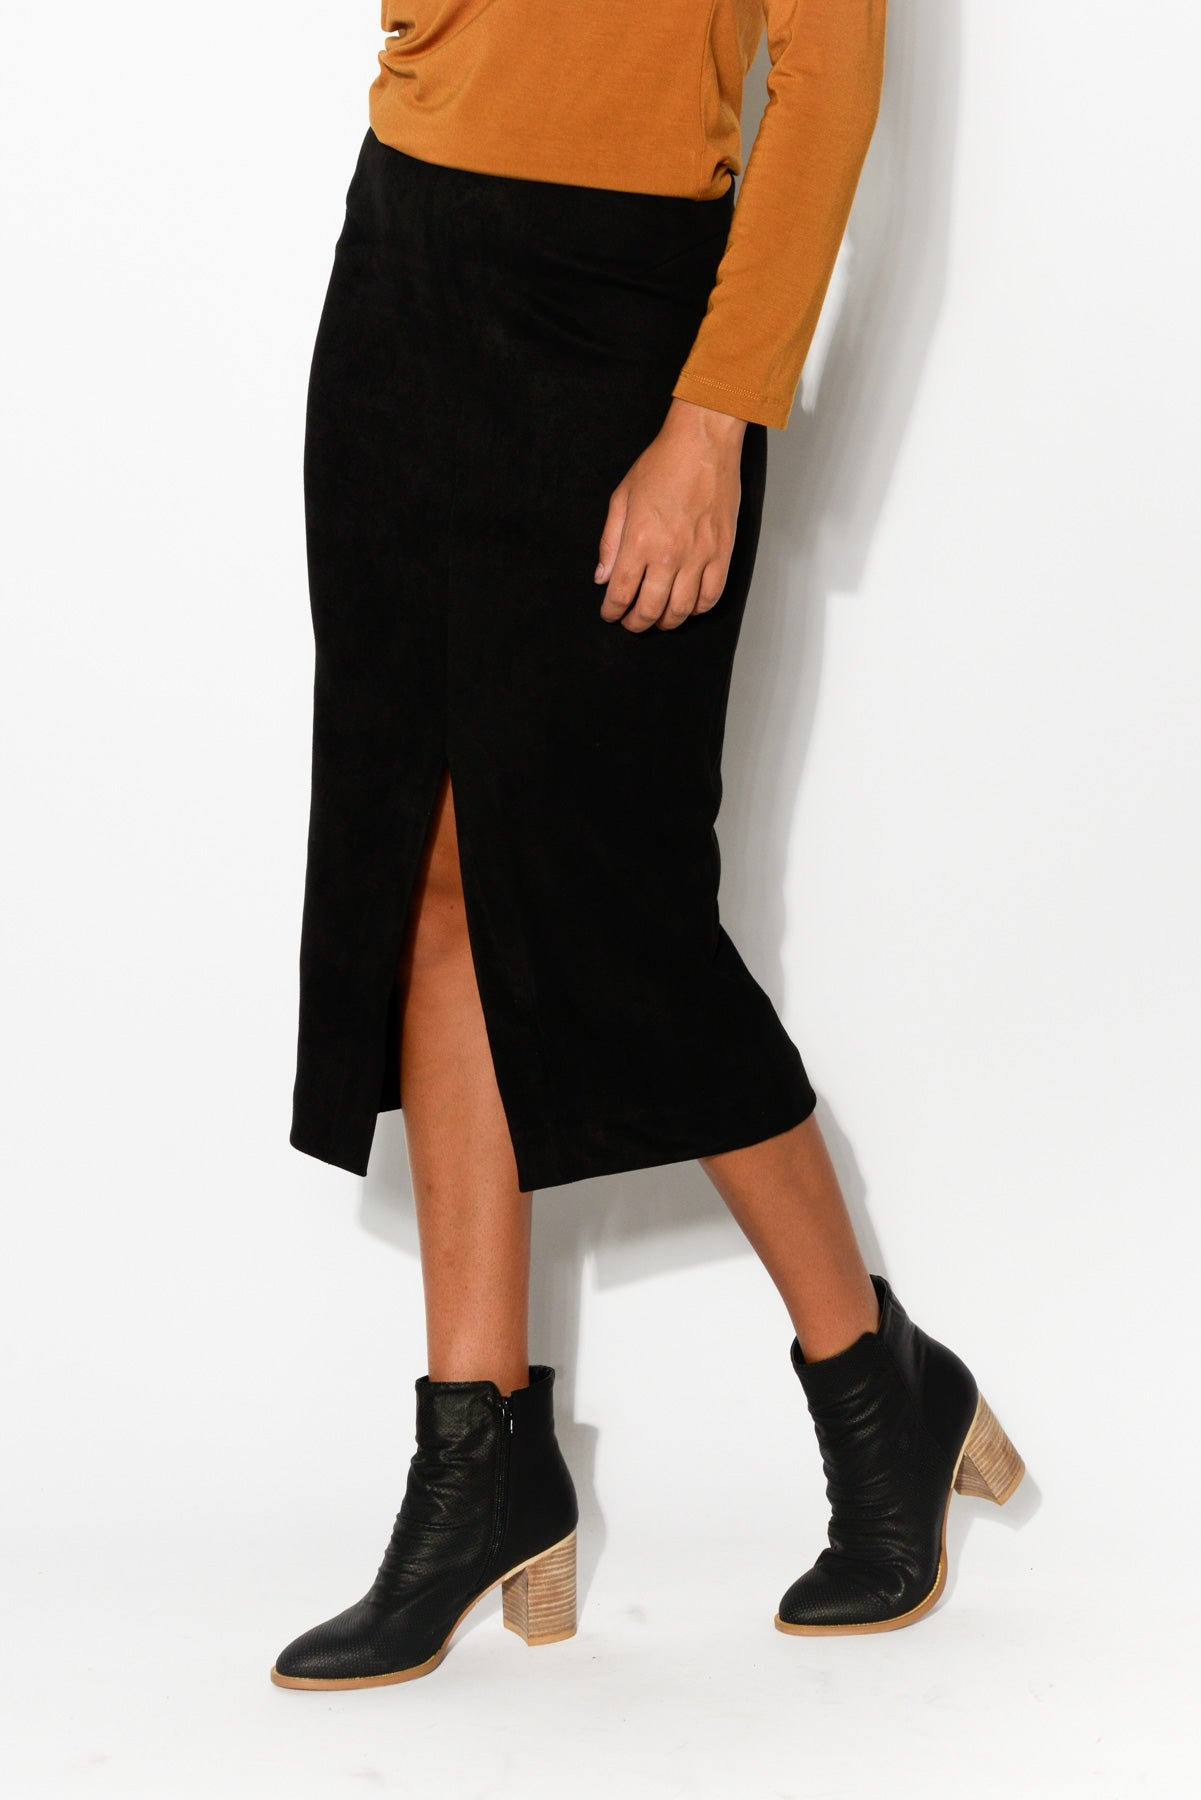 Esther Black Midi Skirt - Blue Bungalow